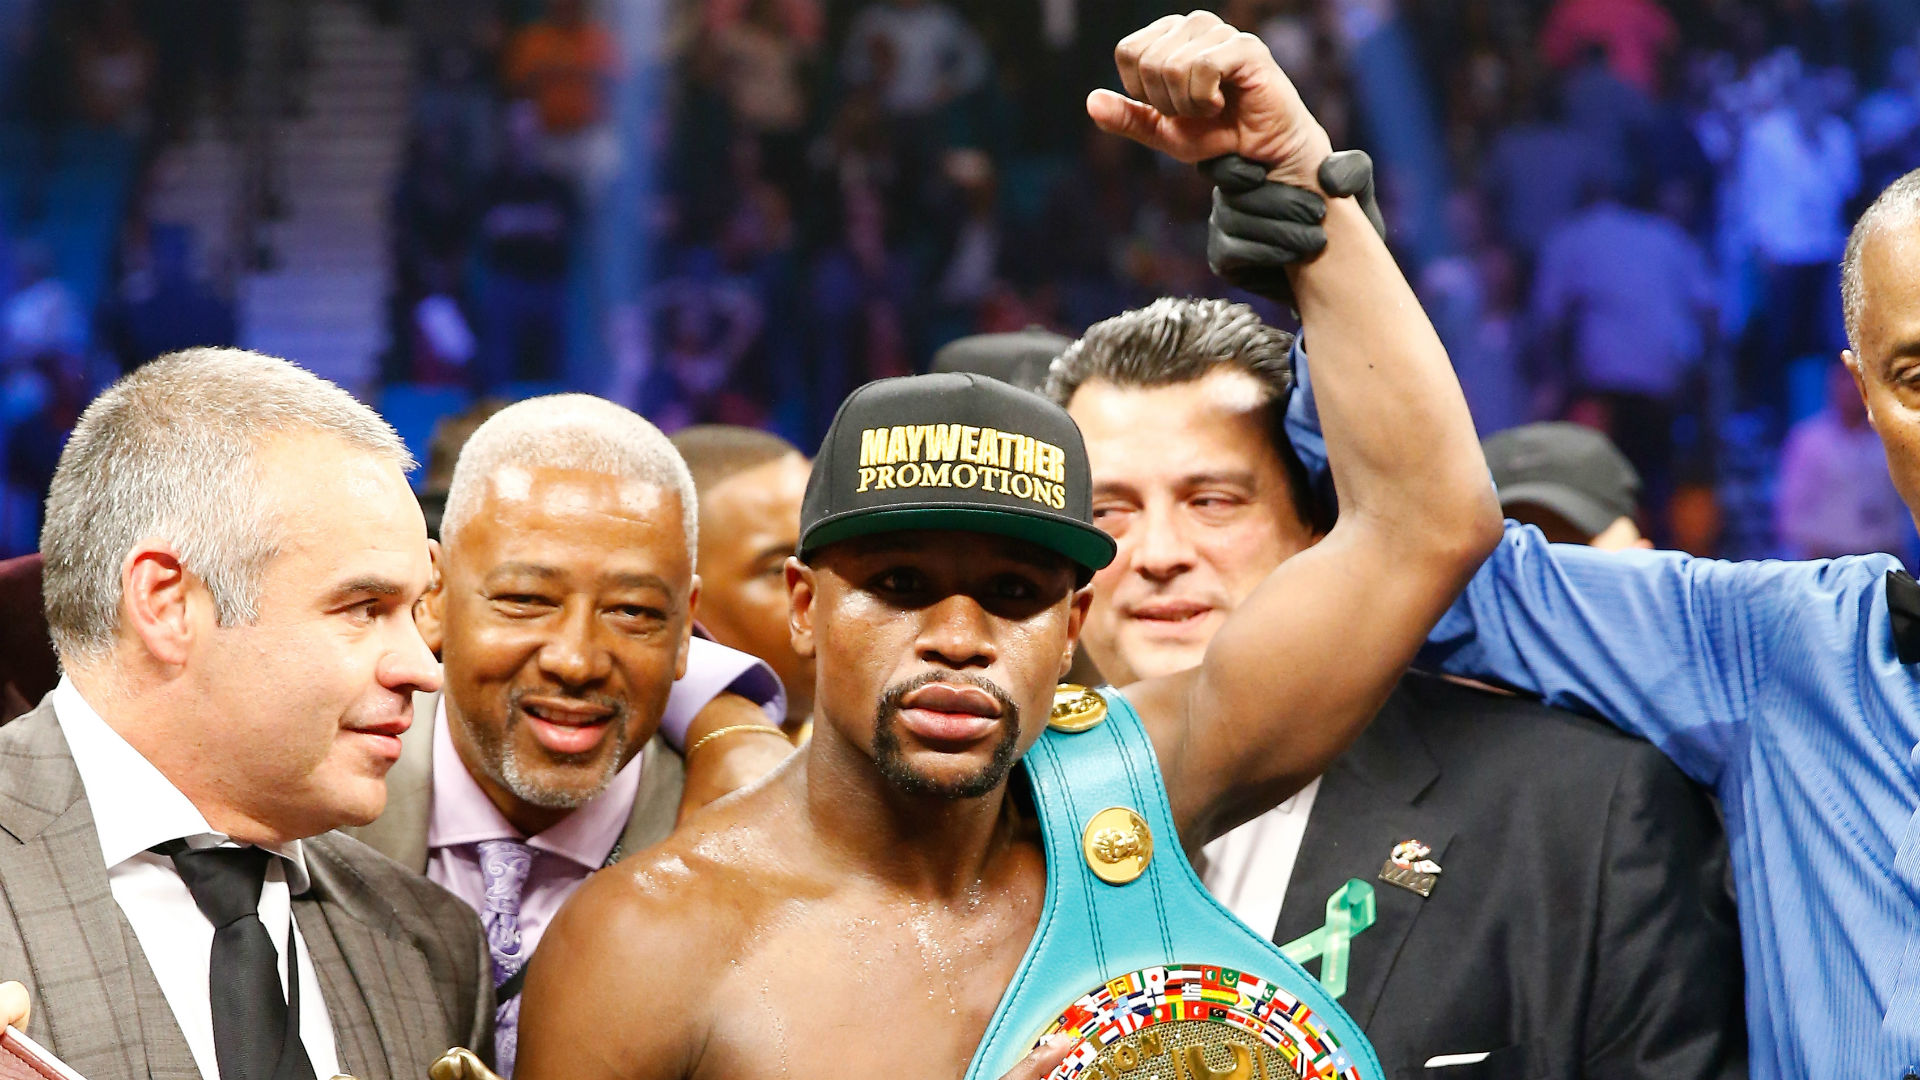 Mayweather vs berto betting odds mt4 binary options signal indicator for es